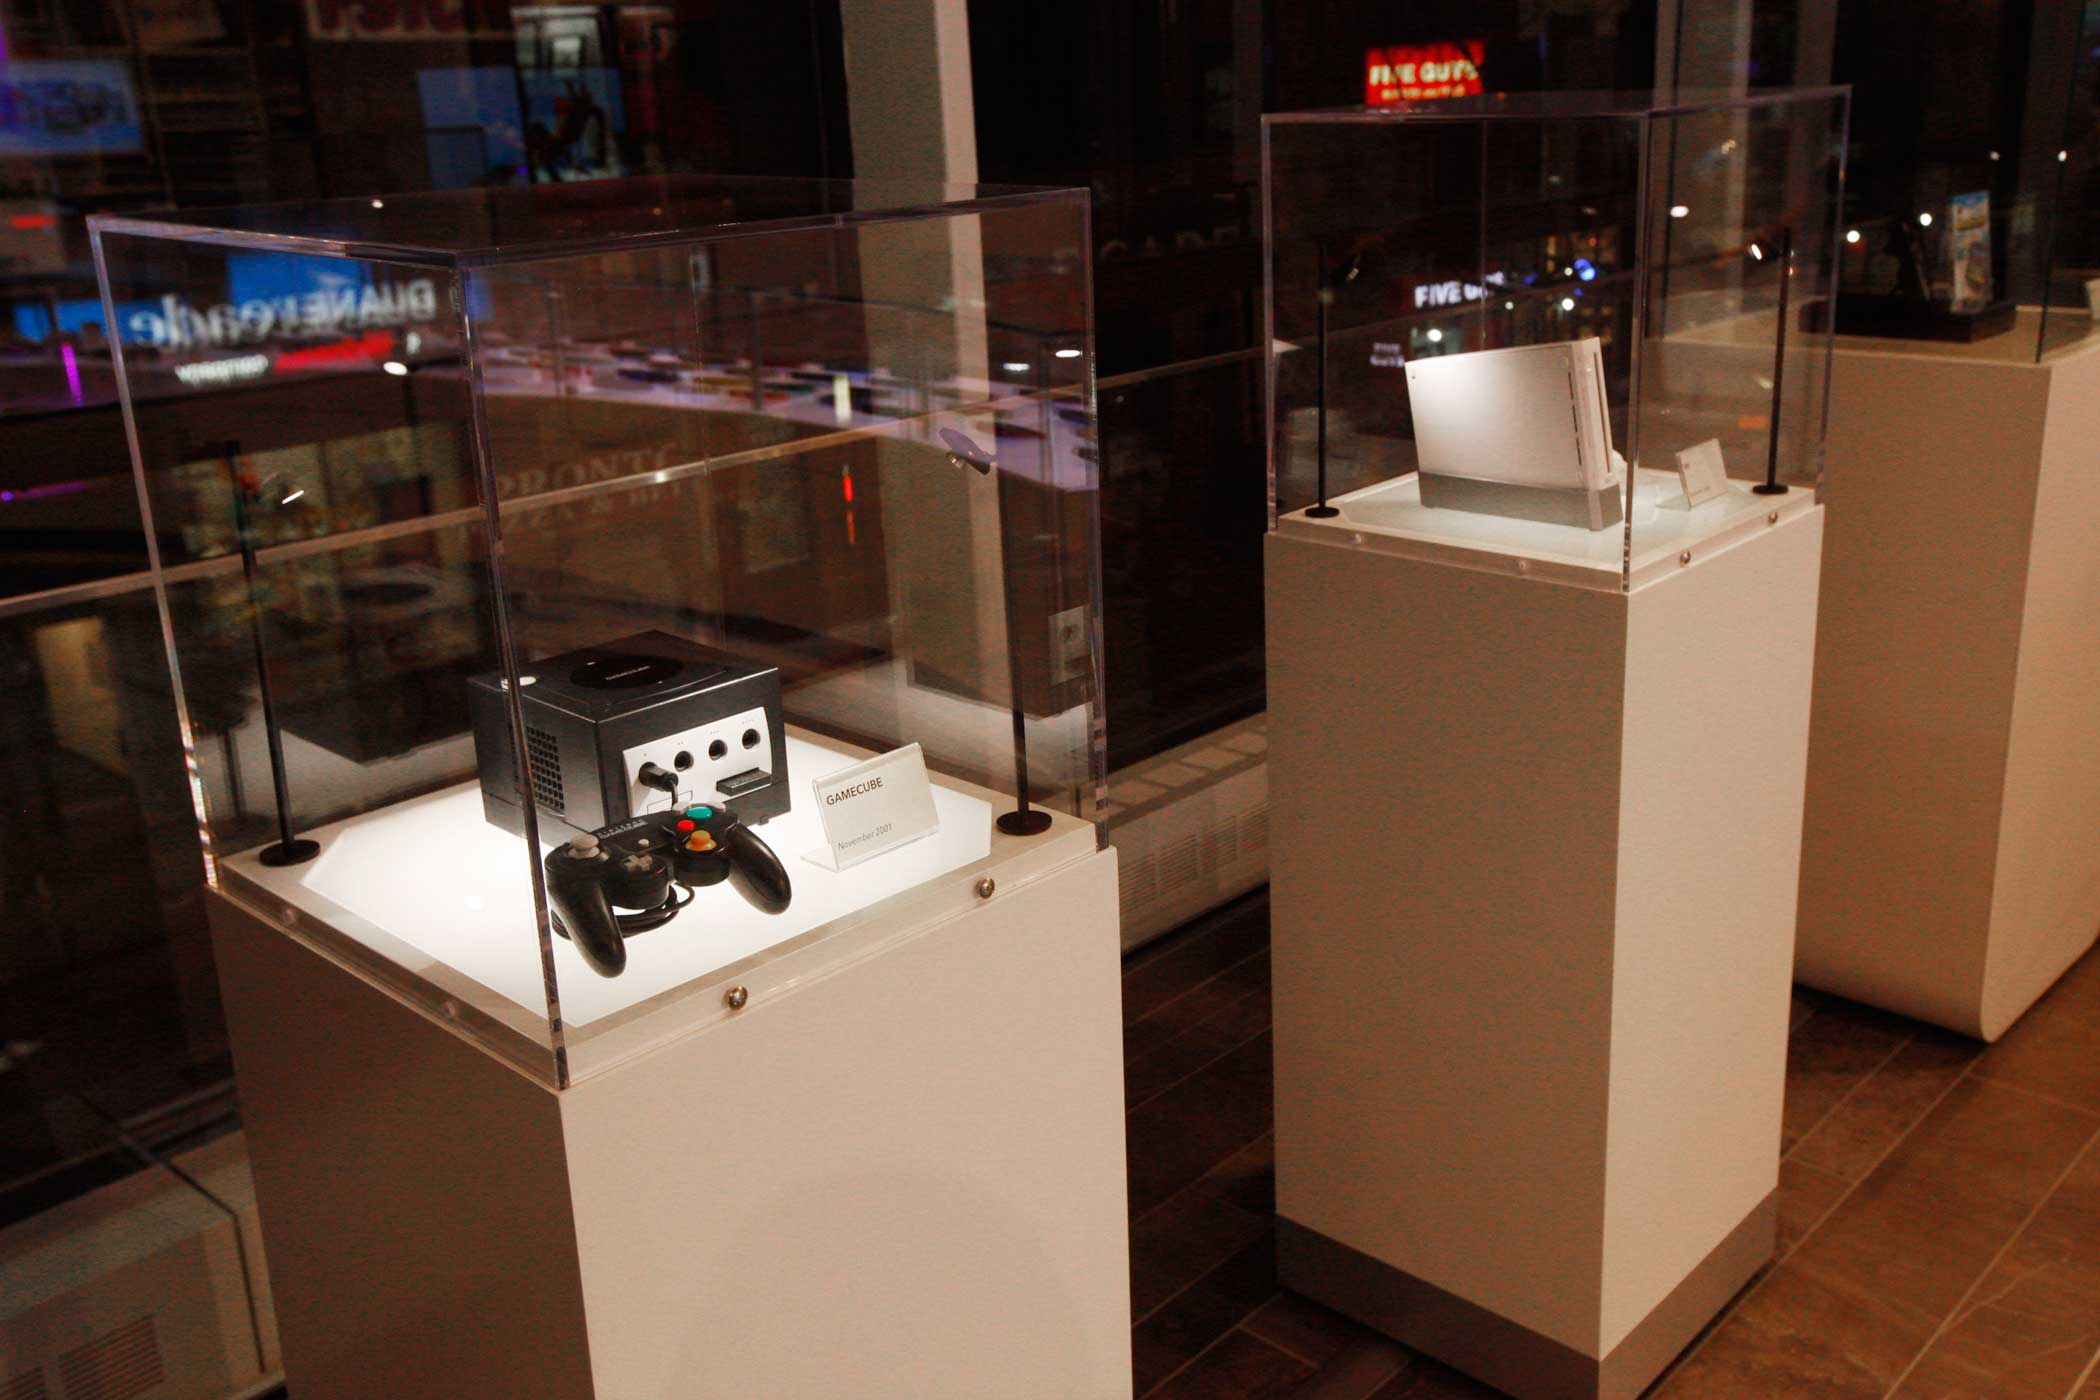 Each gaming system has its own display case.